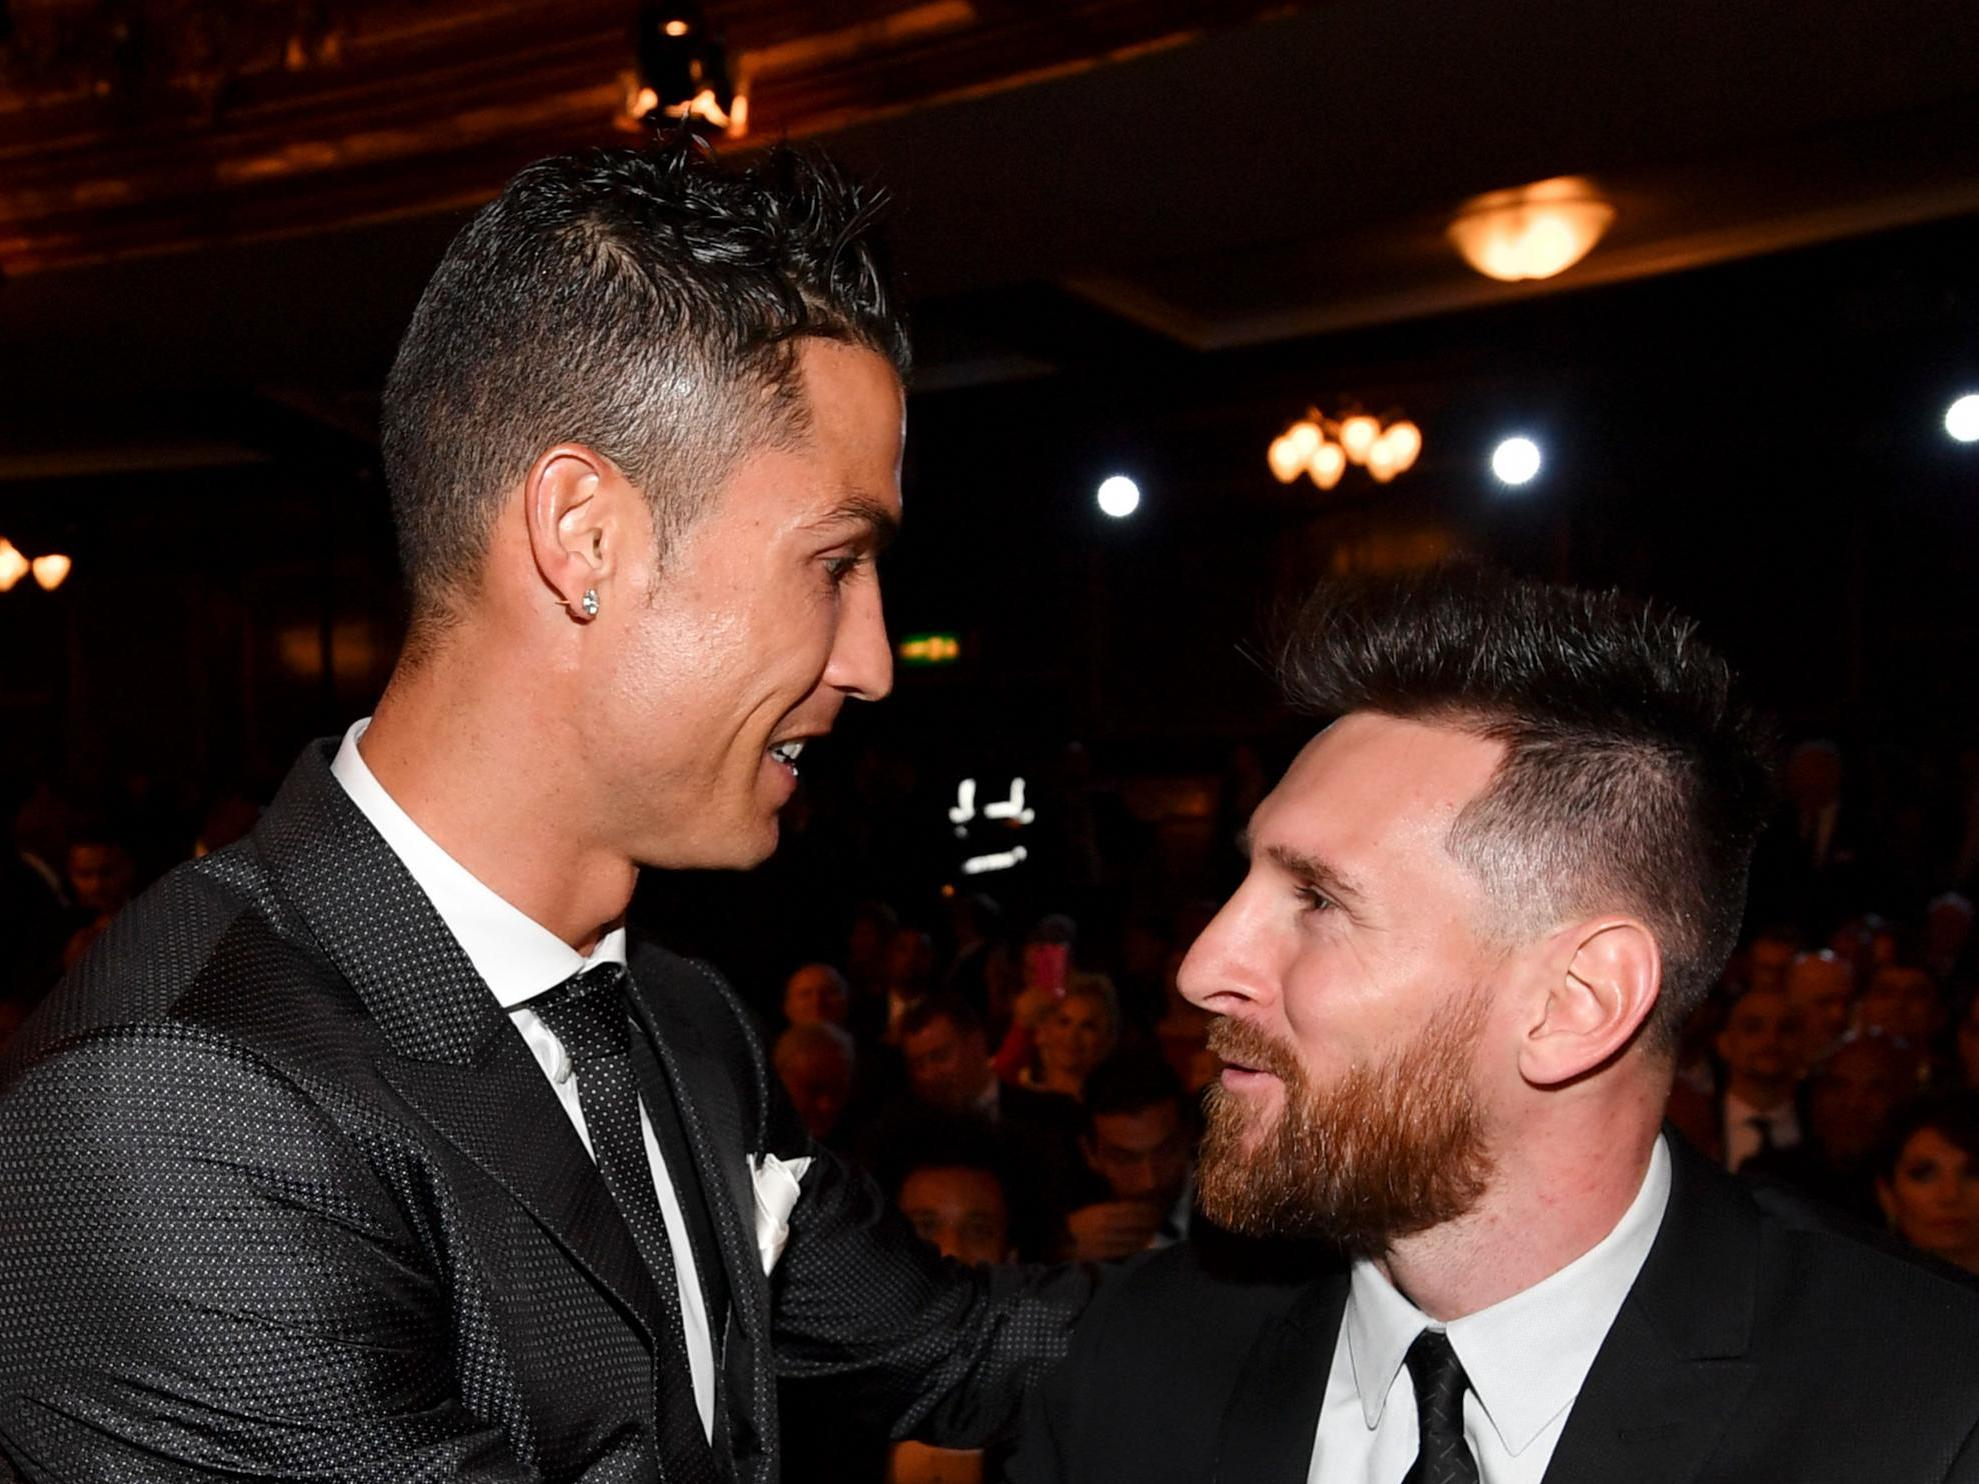 Pele attempts to settle Lionel Messi vs Cristiano Ronaldo debate - The Independent